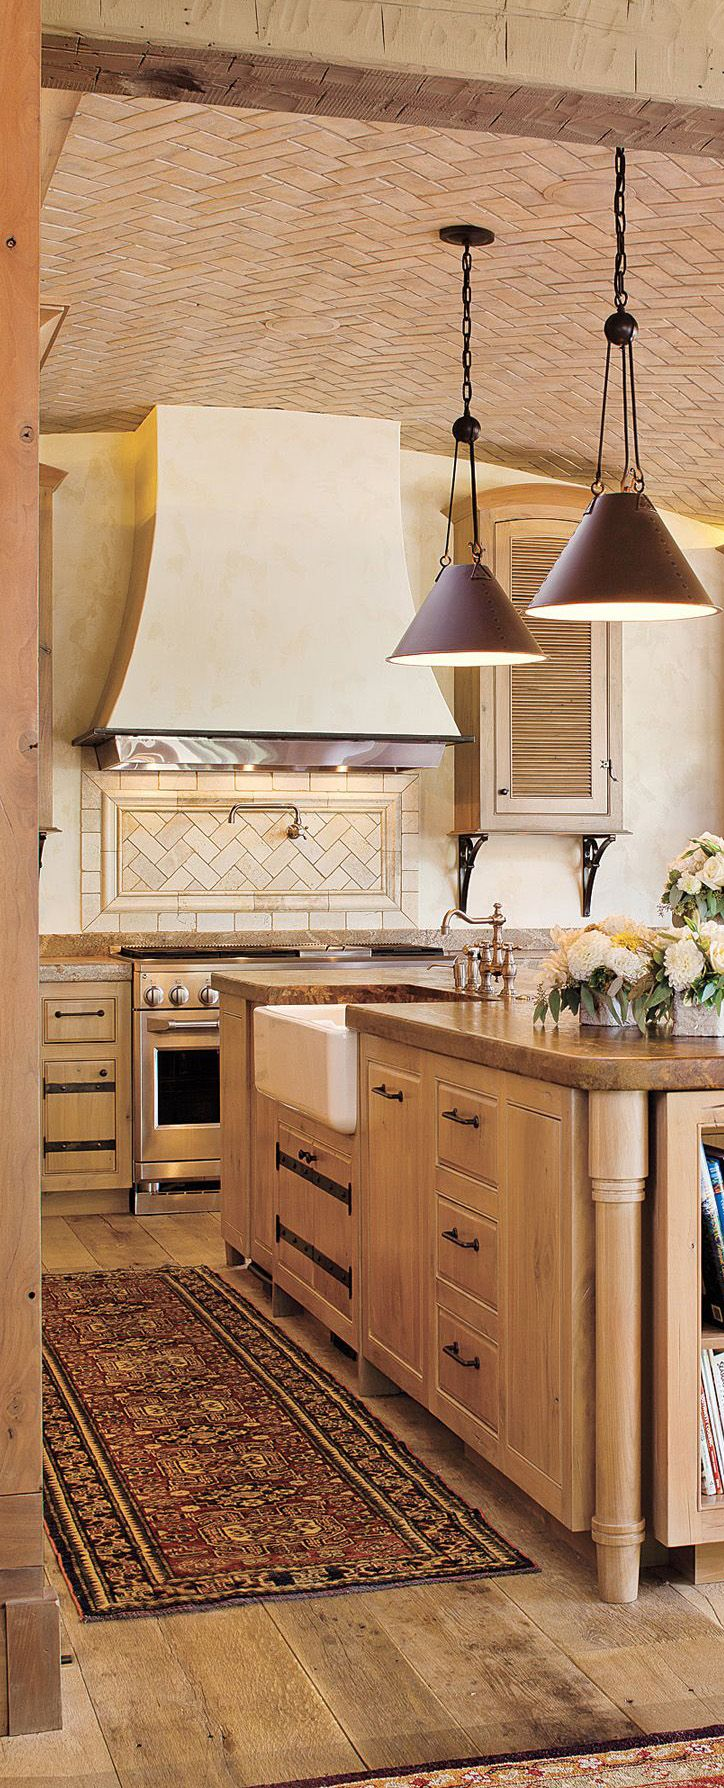 Country Kitchen. Modern Rustic ...